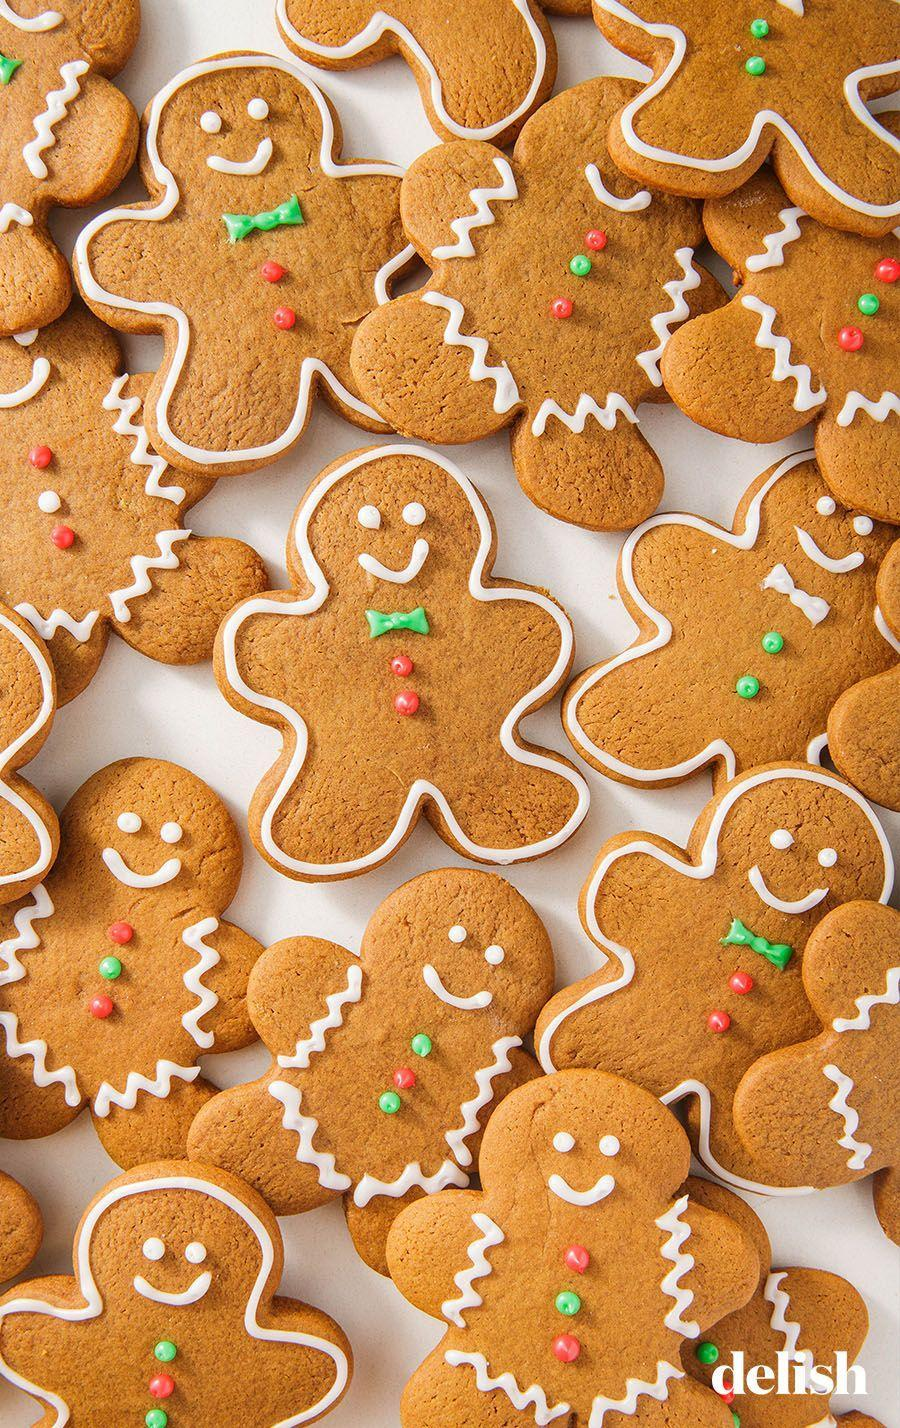 """<p>Master this classic recipe and make gingerbread men worthy of Santa himself.</p><p>Get the recipe from <a href=""""https://www.delish.com/cooking/recipes/a50468/gingerbread-cookies-recipe/"""" rel=""""nofollow noopener"""" target=""""_blank"""" data-ylk=""""slk:Delish"""" class=""""link rapid-noclick-resp"""">Delish</a>.</p>"""